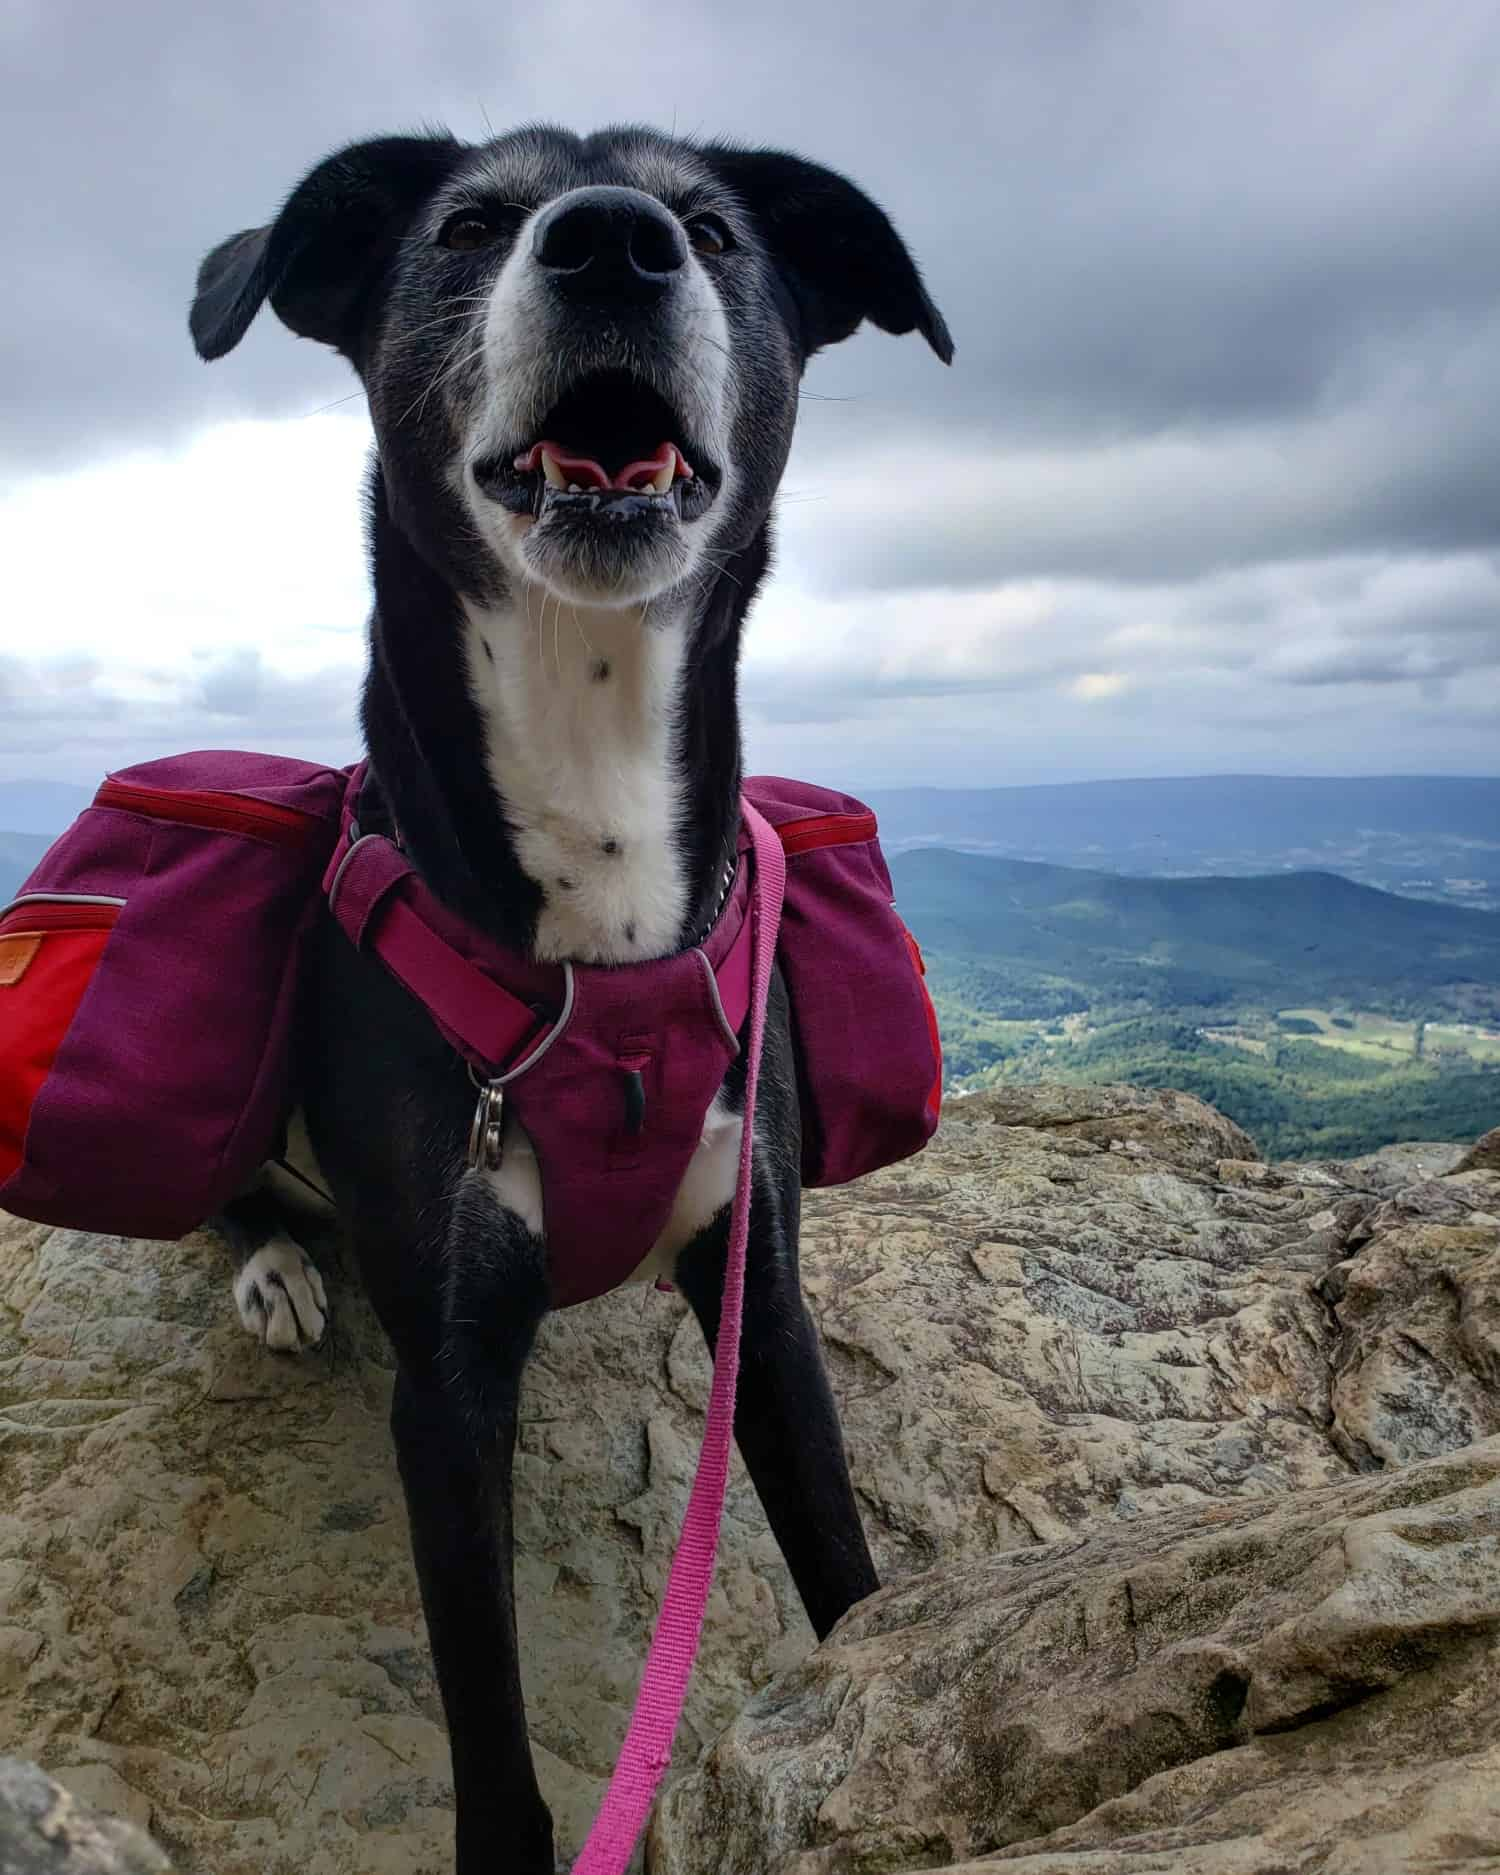 Dog in a magenta backpack and harness sitting on a mountain top